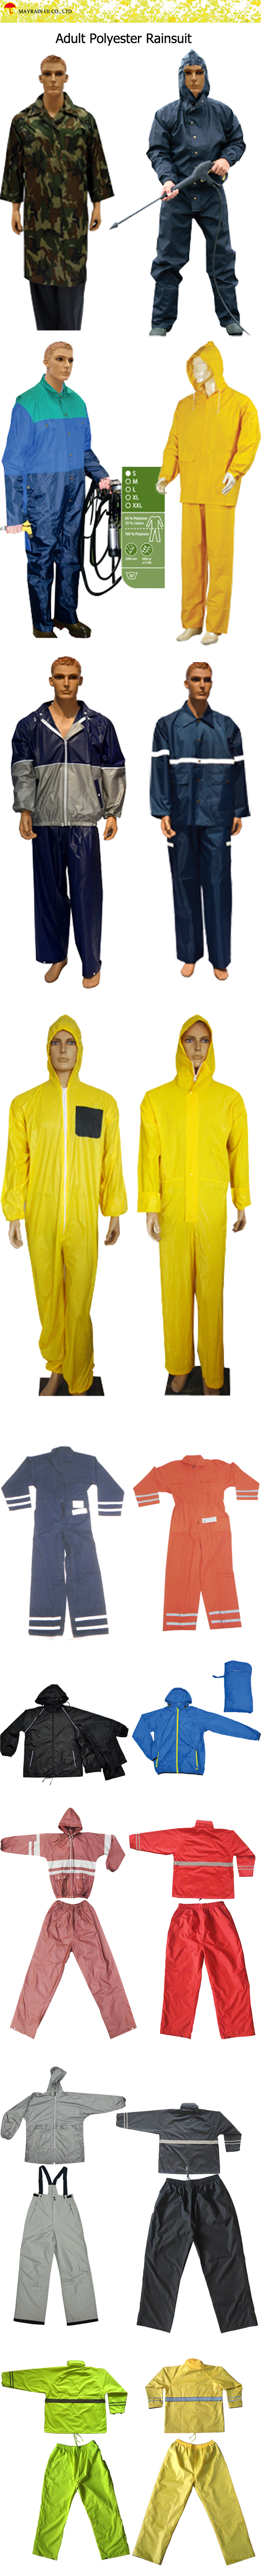 Adult Polyester Rainsuit